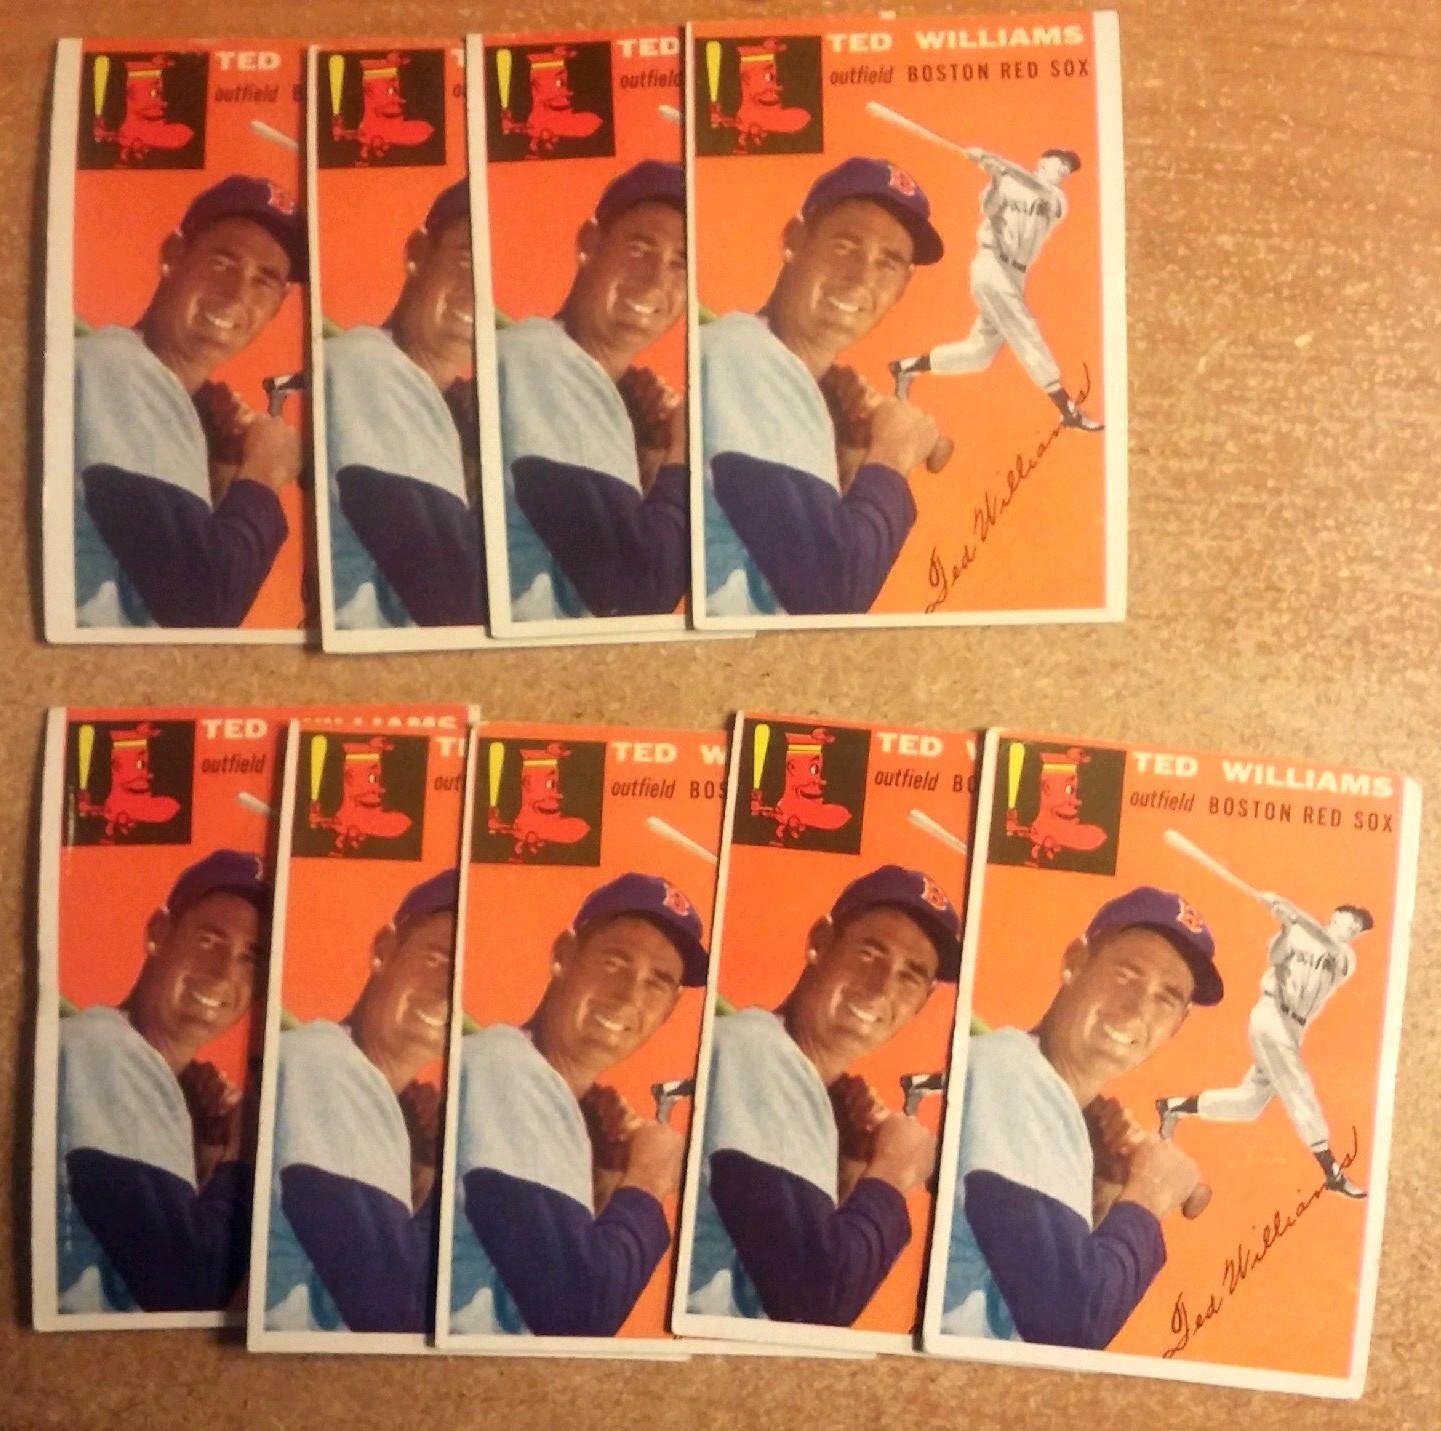 Ted Williams 1954 Topps cards